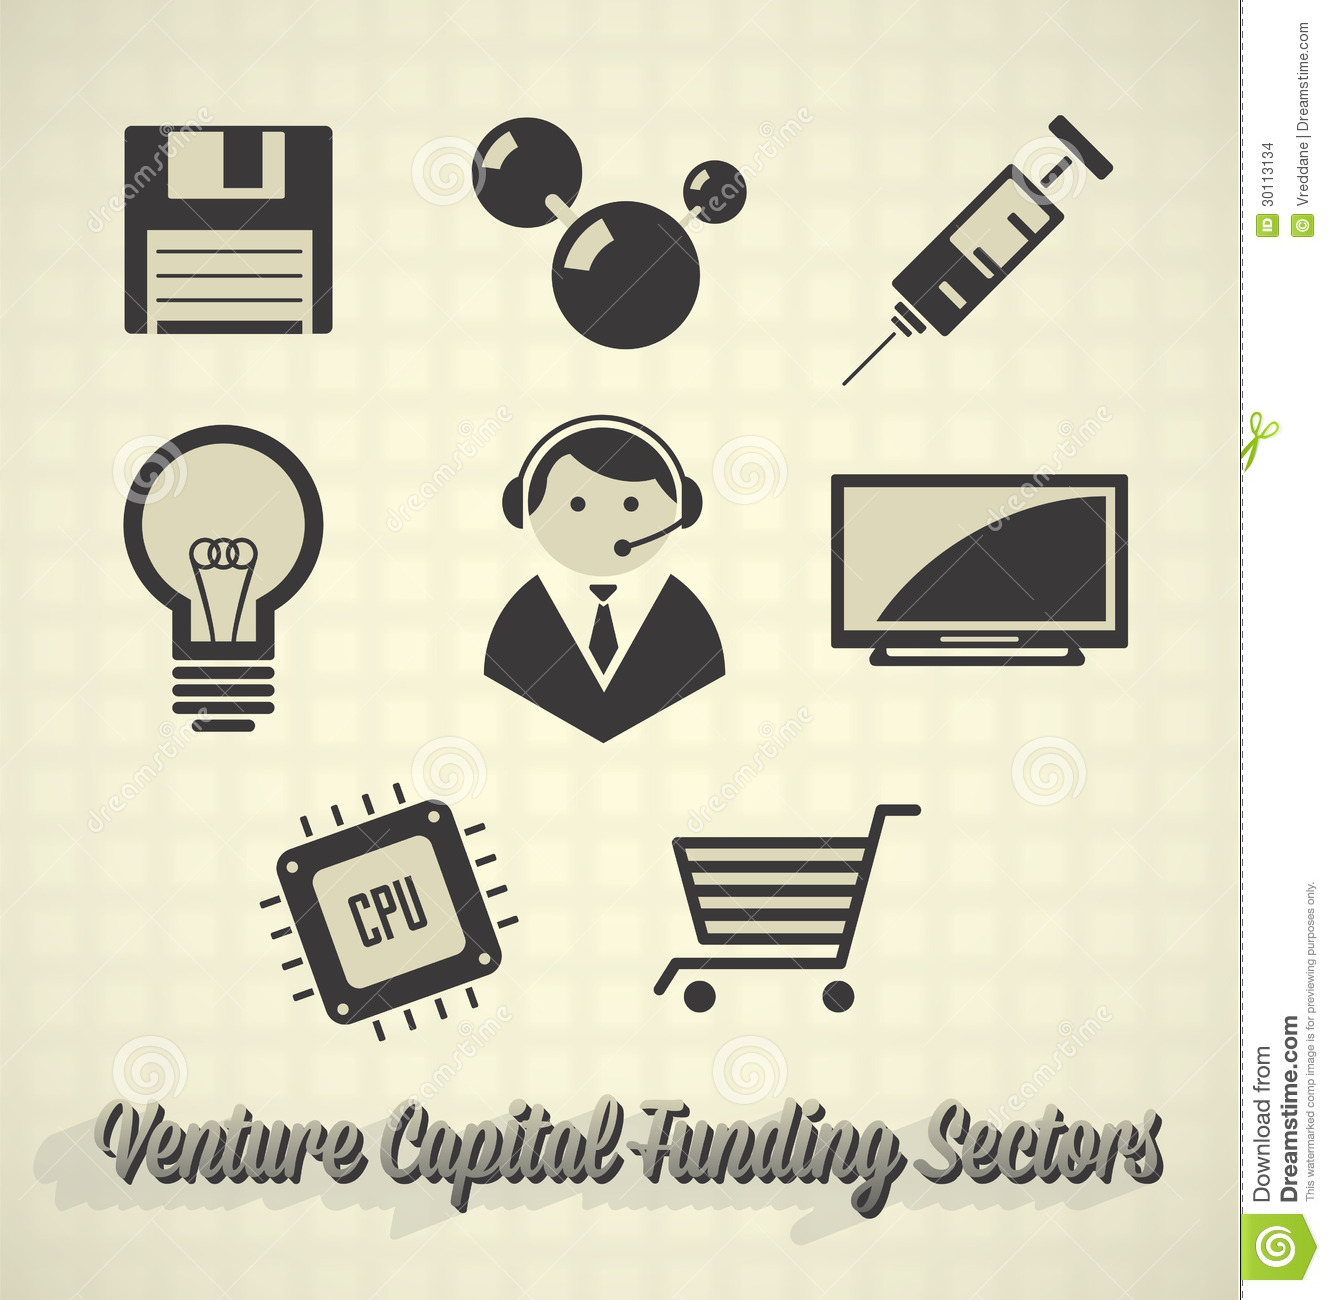 Venture Capital Funding Sectors Stock Images - Image: 30113134 - photo#4